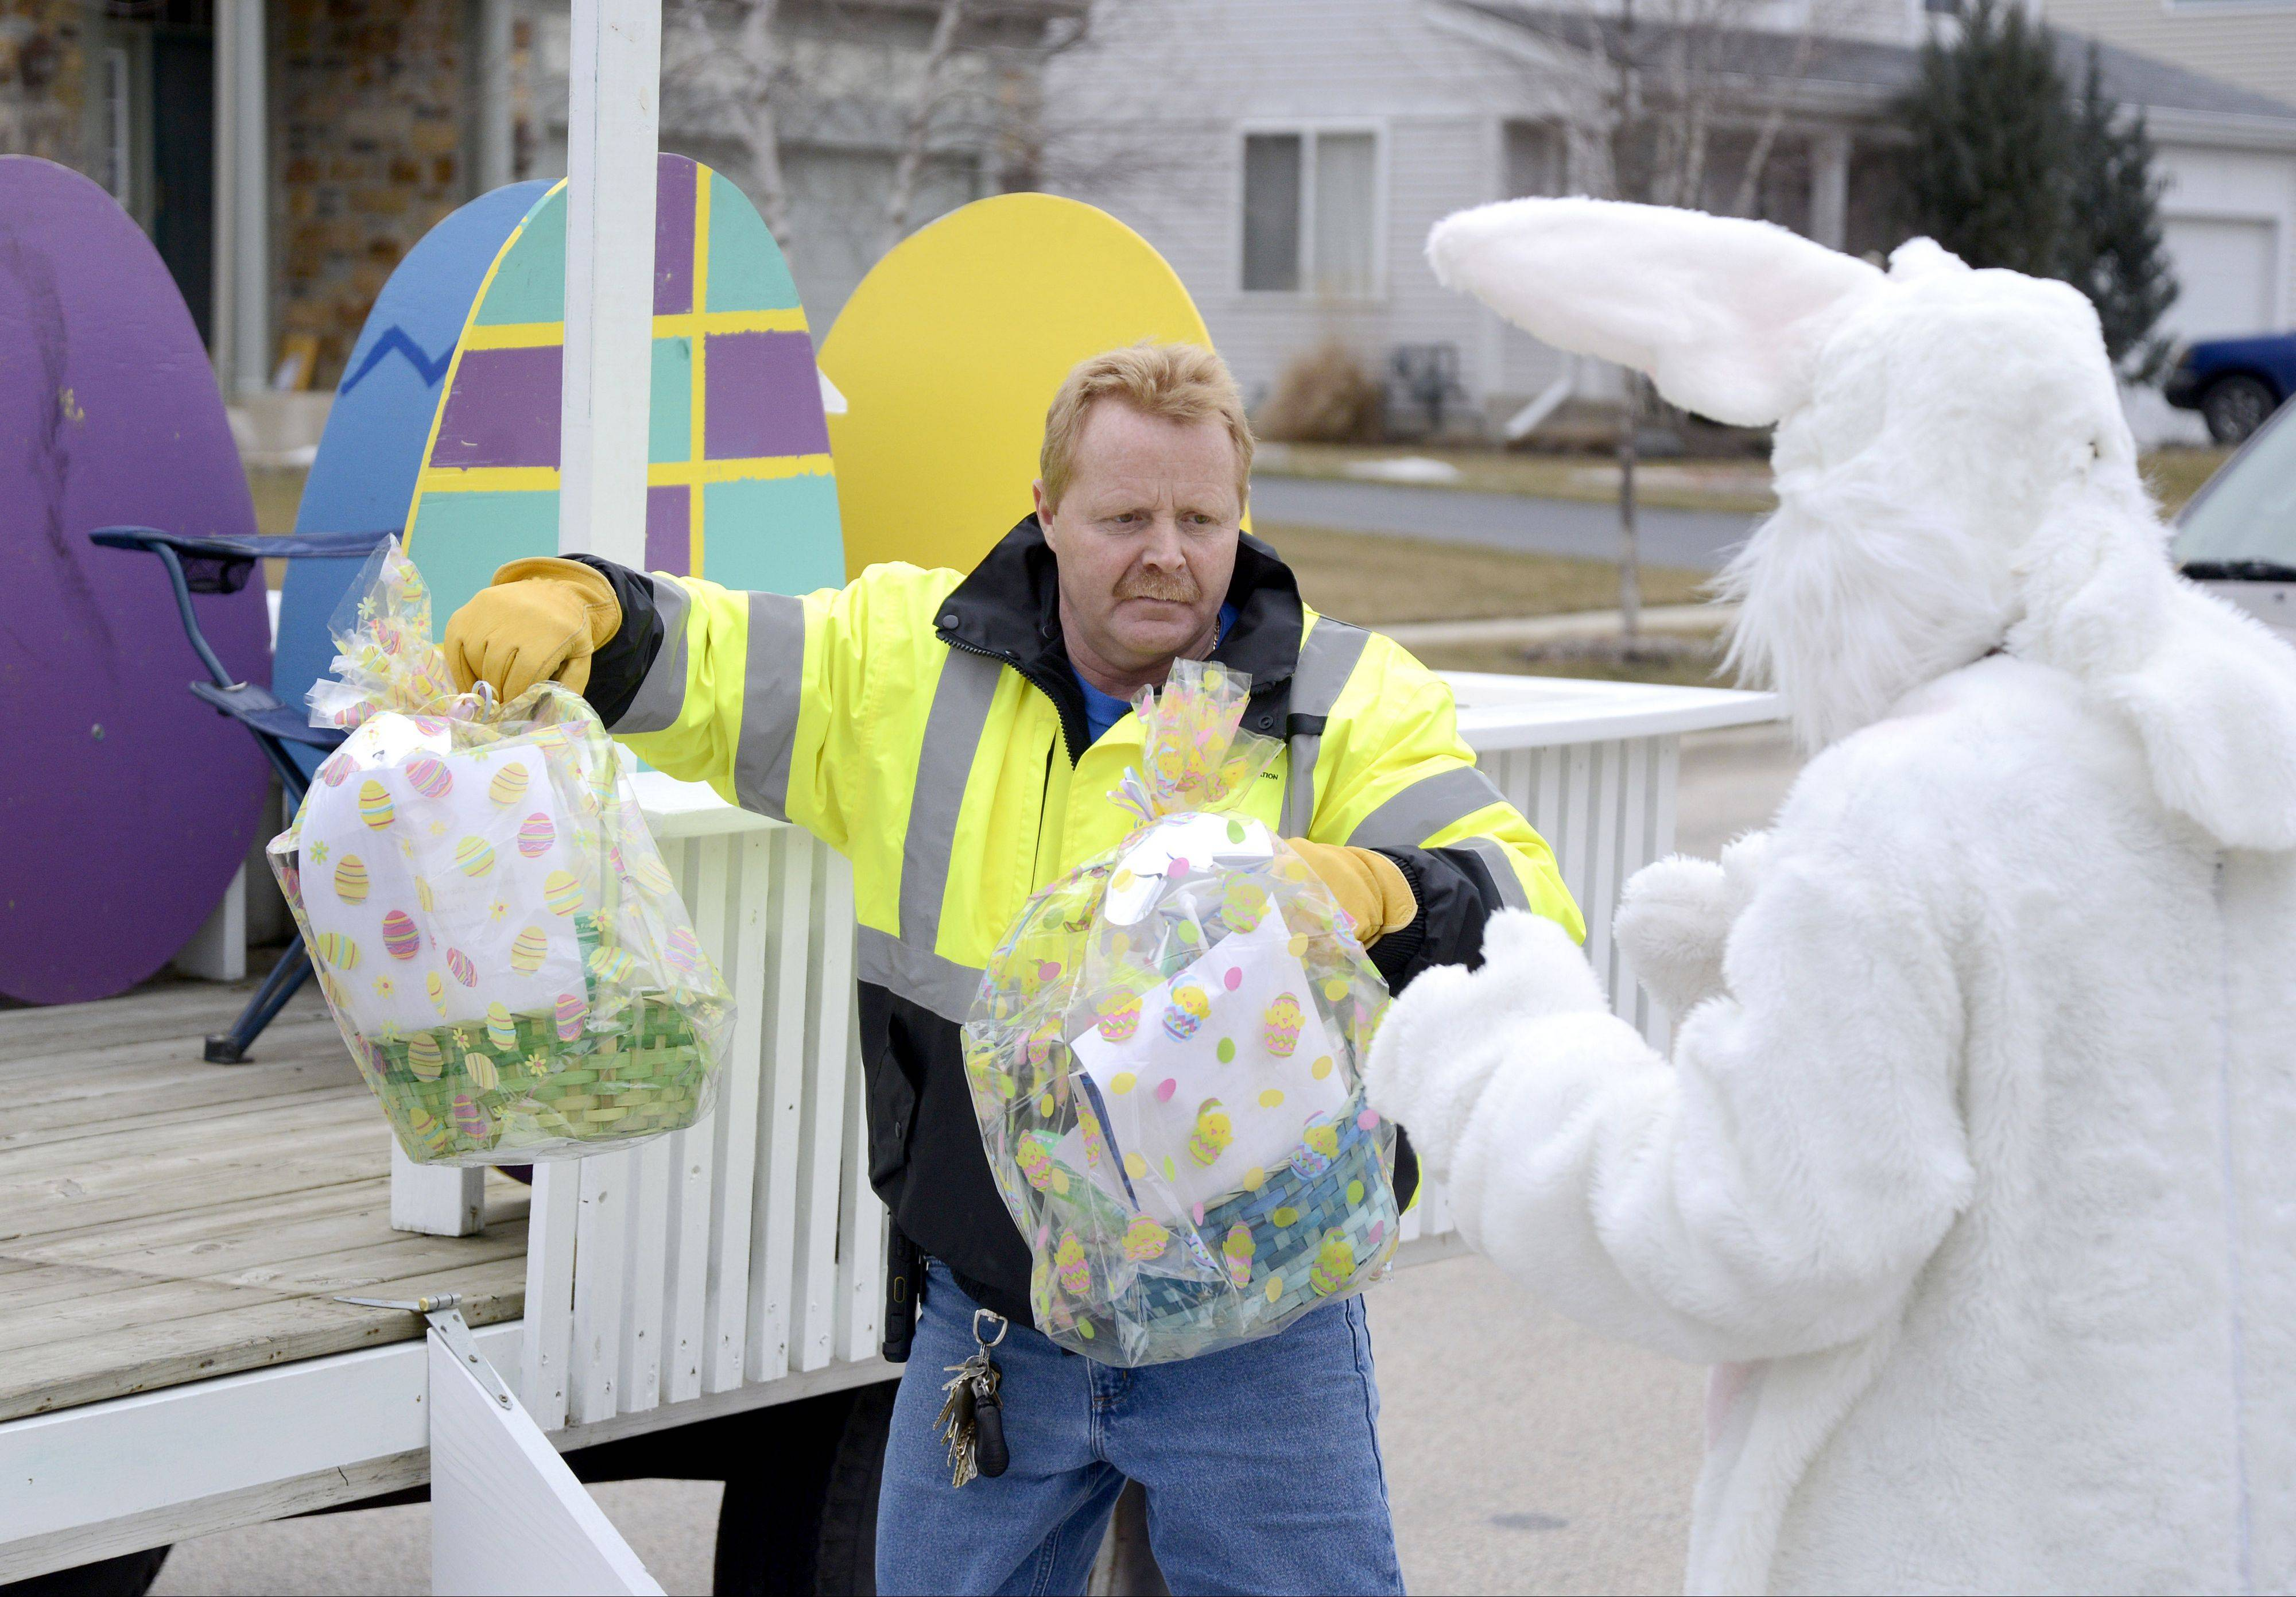 John Tyree hands off the baskets for the next delivery to the Easter Bunny (aka Tessa Eggebrecht of South Elgin). The South Elgin Parks and Recreation Department visited several homes recently making deliveries to children's front doors.